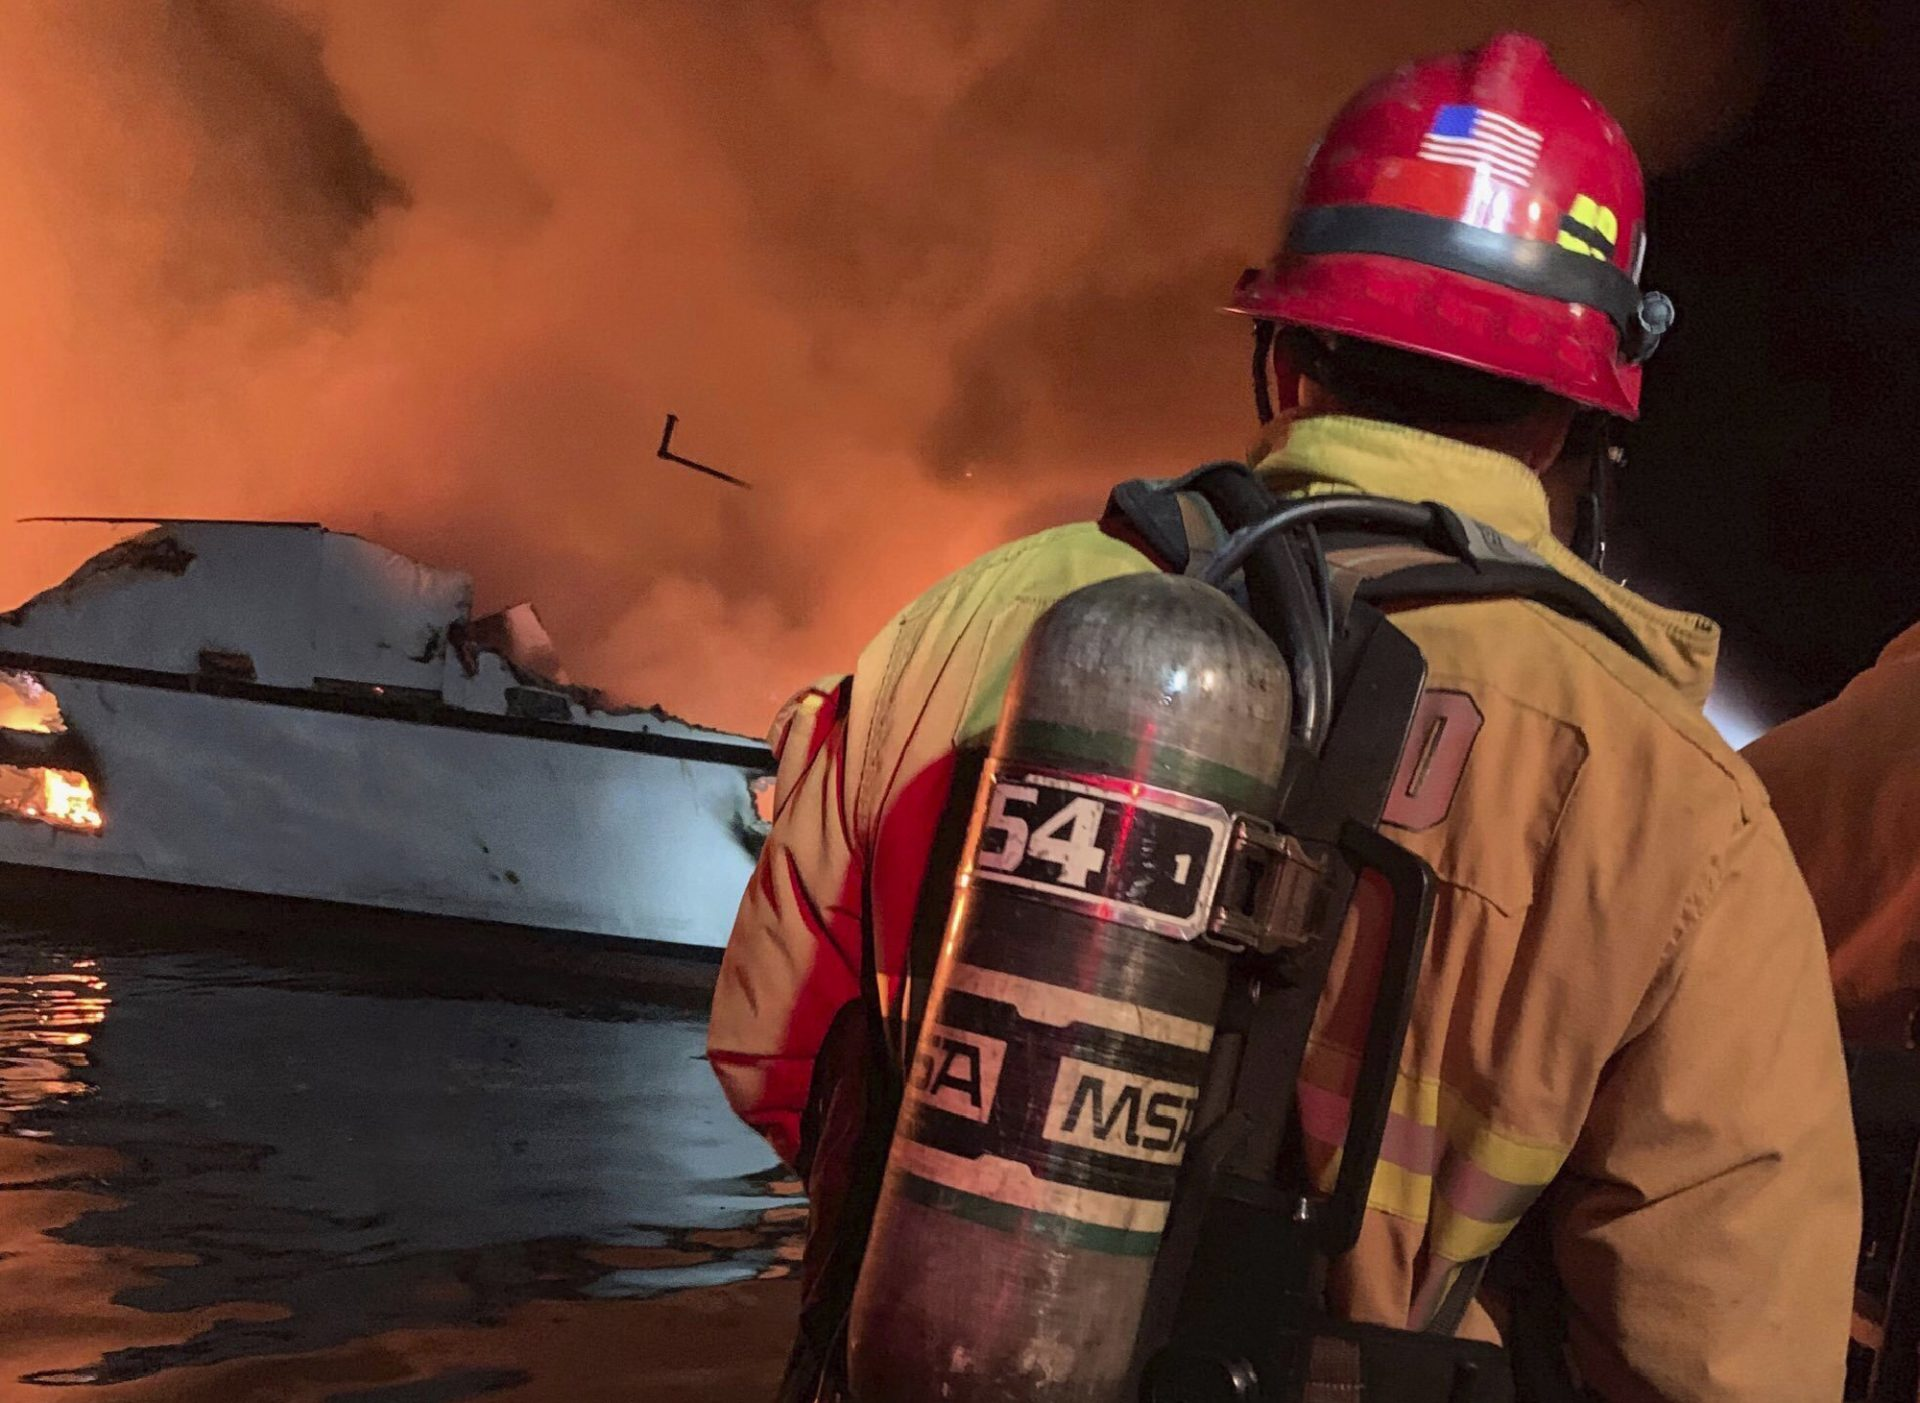 """In this photo provided by the Ventura County Fire Department, VCFD firefighters respond to a boat fire off the coast of southern California, Monday, Sept. 2, 2019. The U.S. Coast Guard said it has launched several boats to help over two dozen people """"in distress"""" off the coast of southern California."""